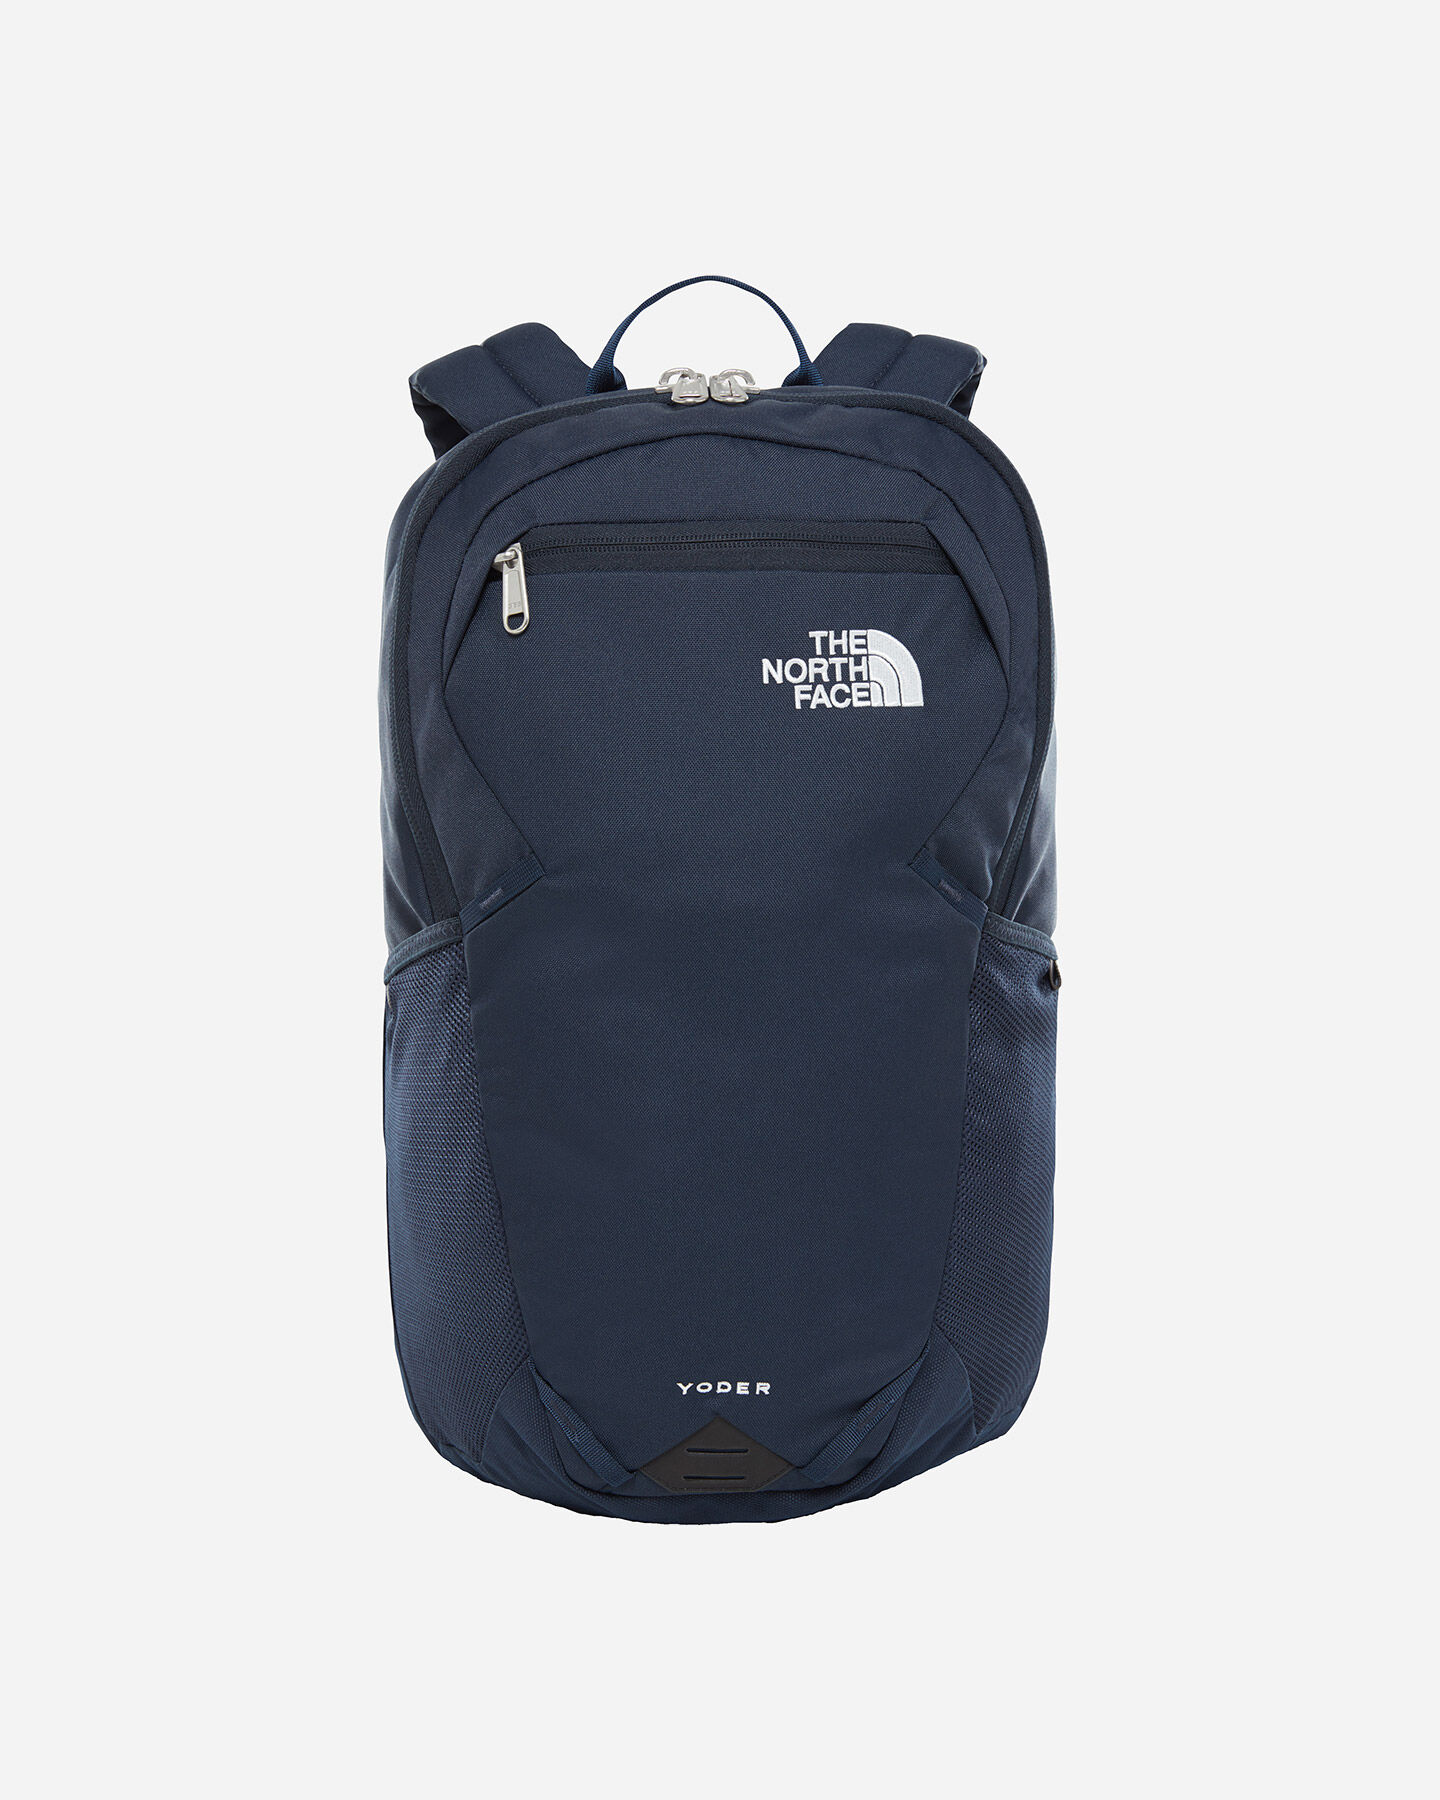 Zaino THE NORTH FACE YODER S2025265 H2G OS scatto 0